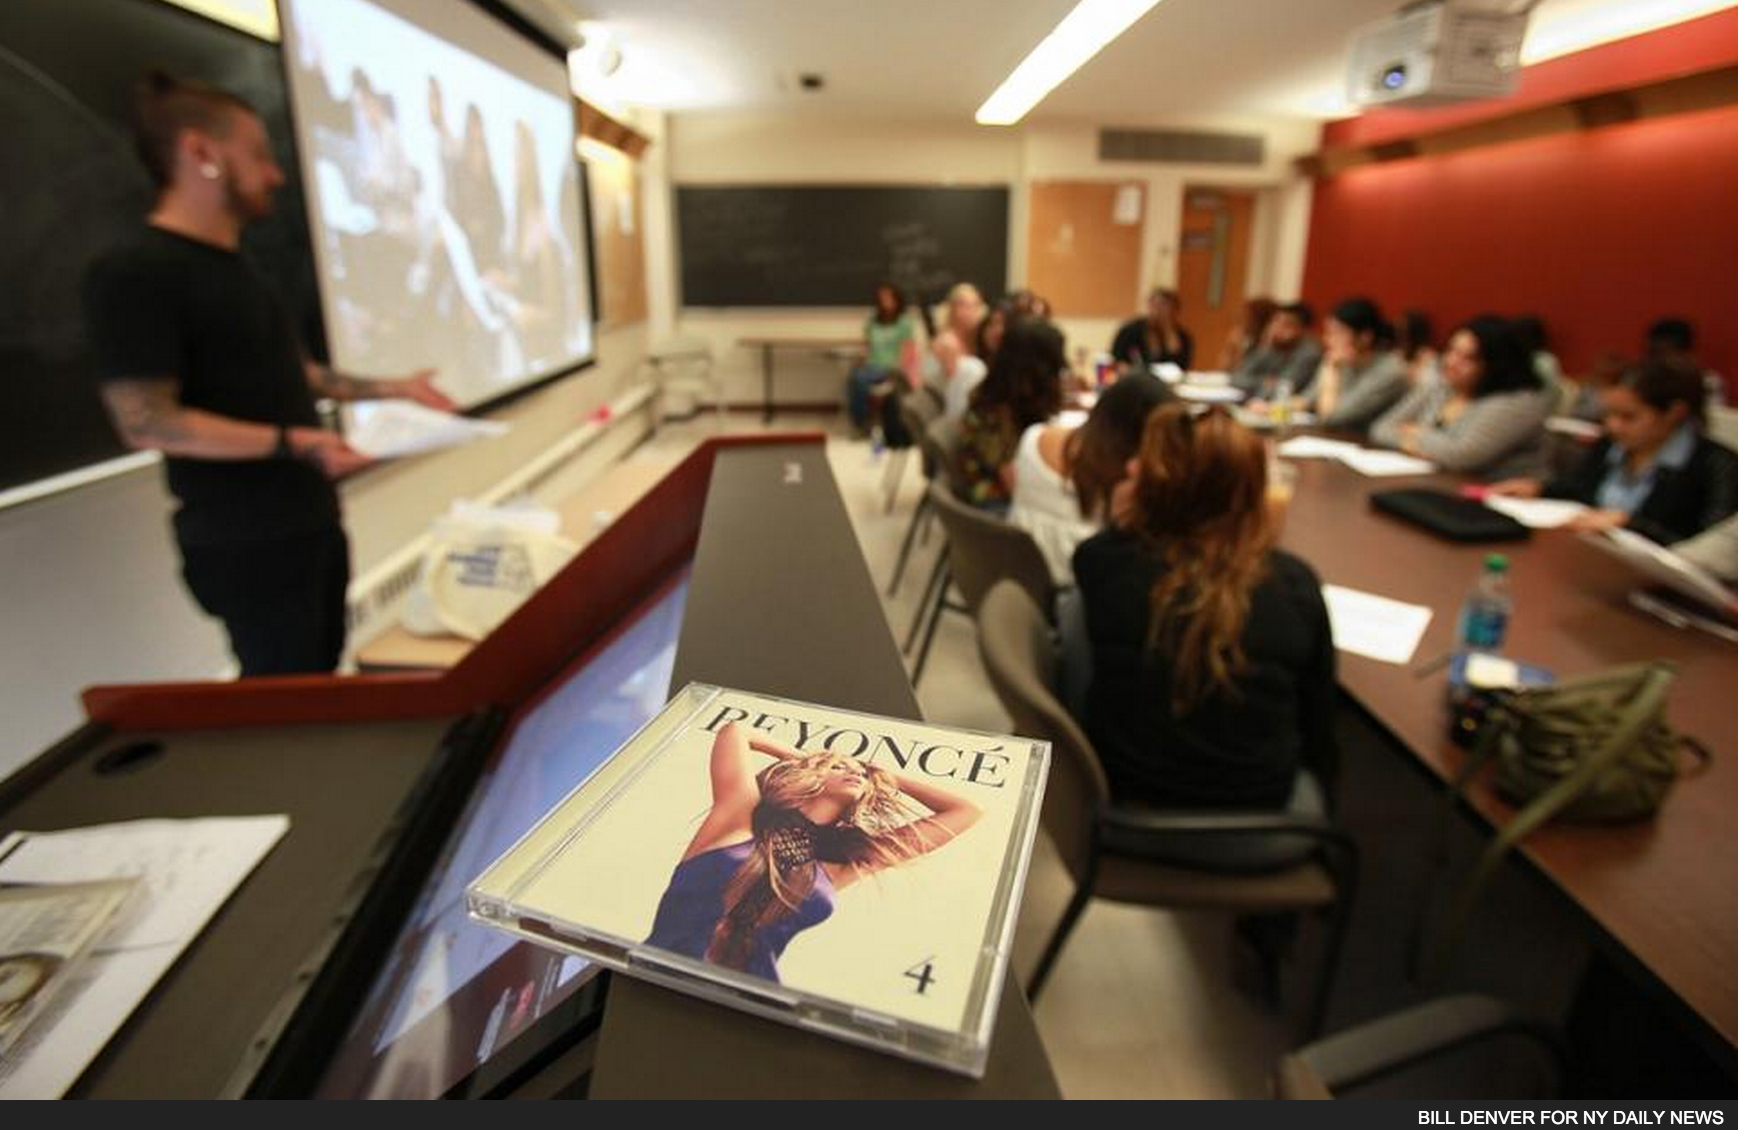 (News Feature) Beyonce Goes to Rutgers | NY Daily News